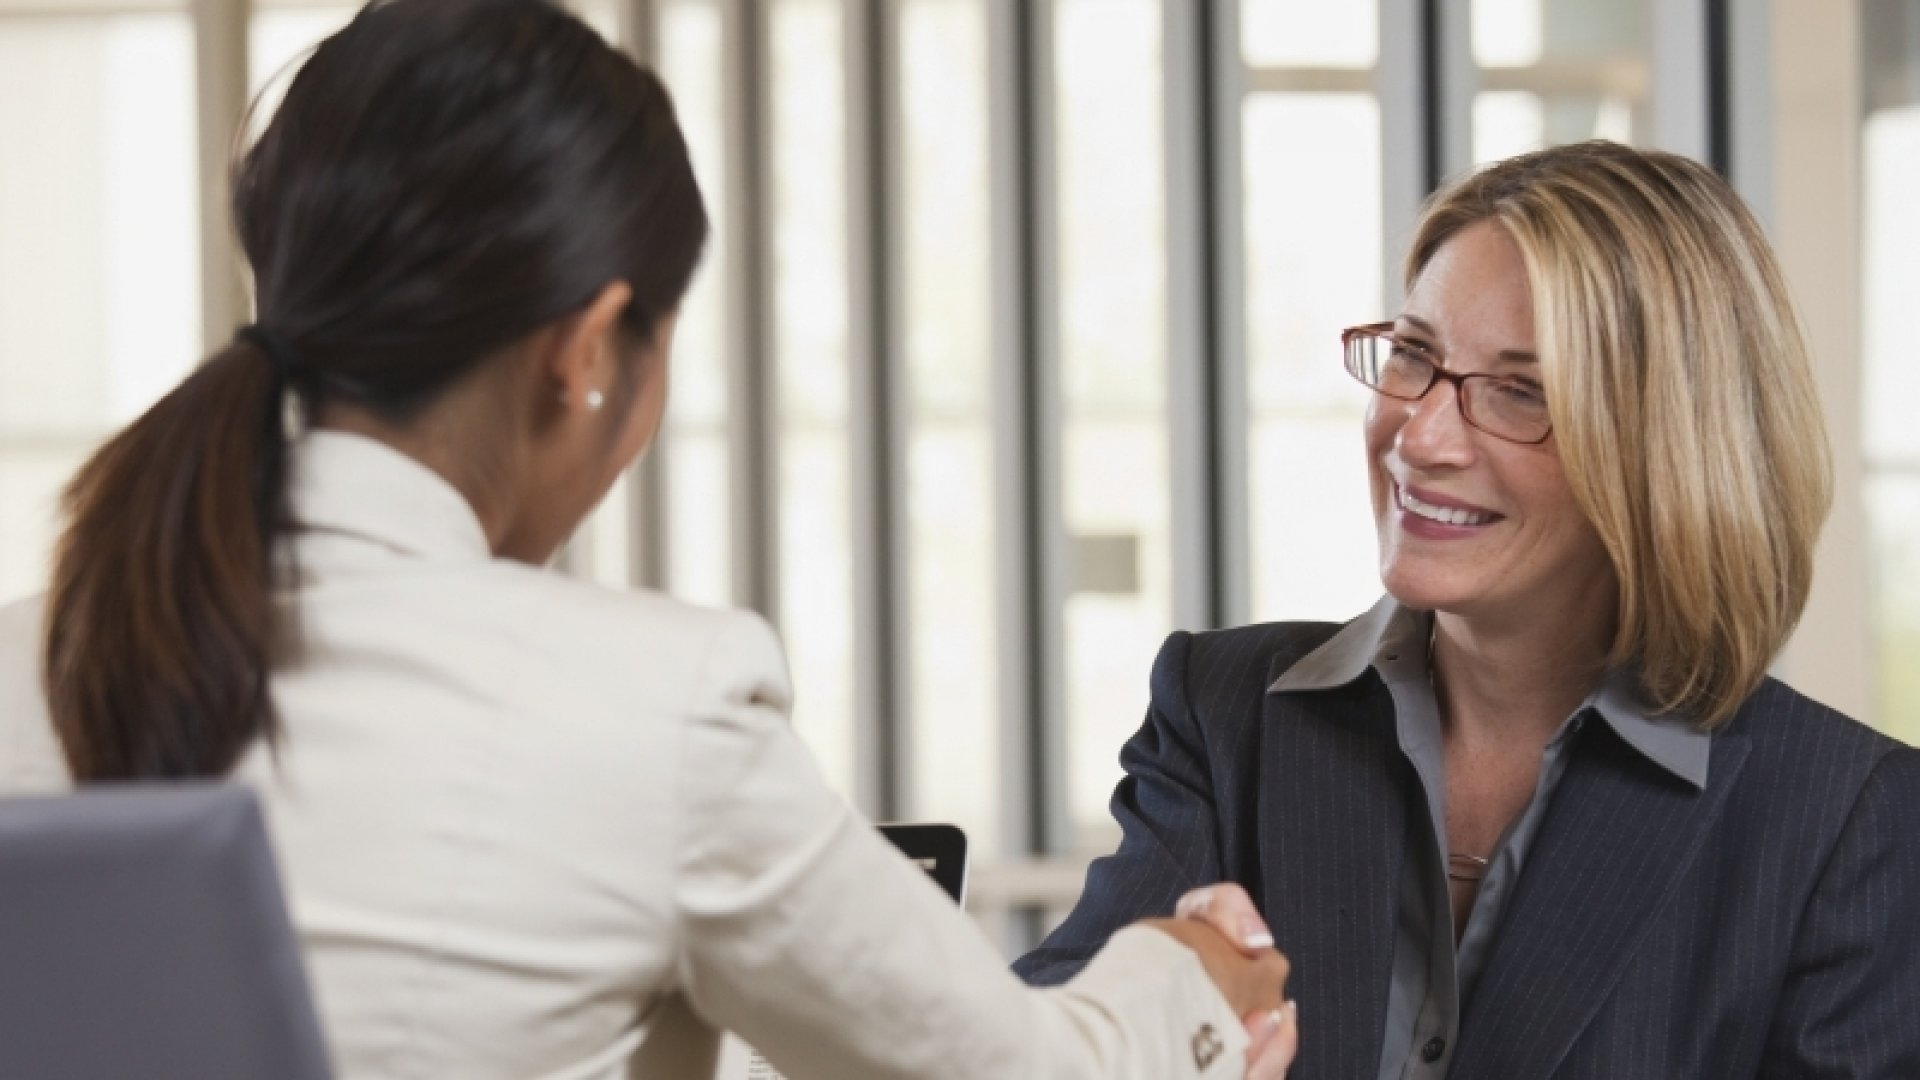 6 Essential Characteristics to Look for When Hiring Your Next HR Director